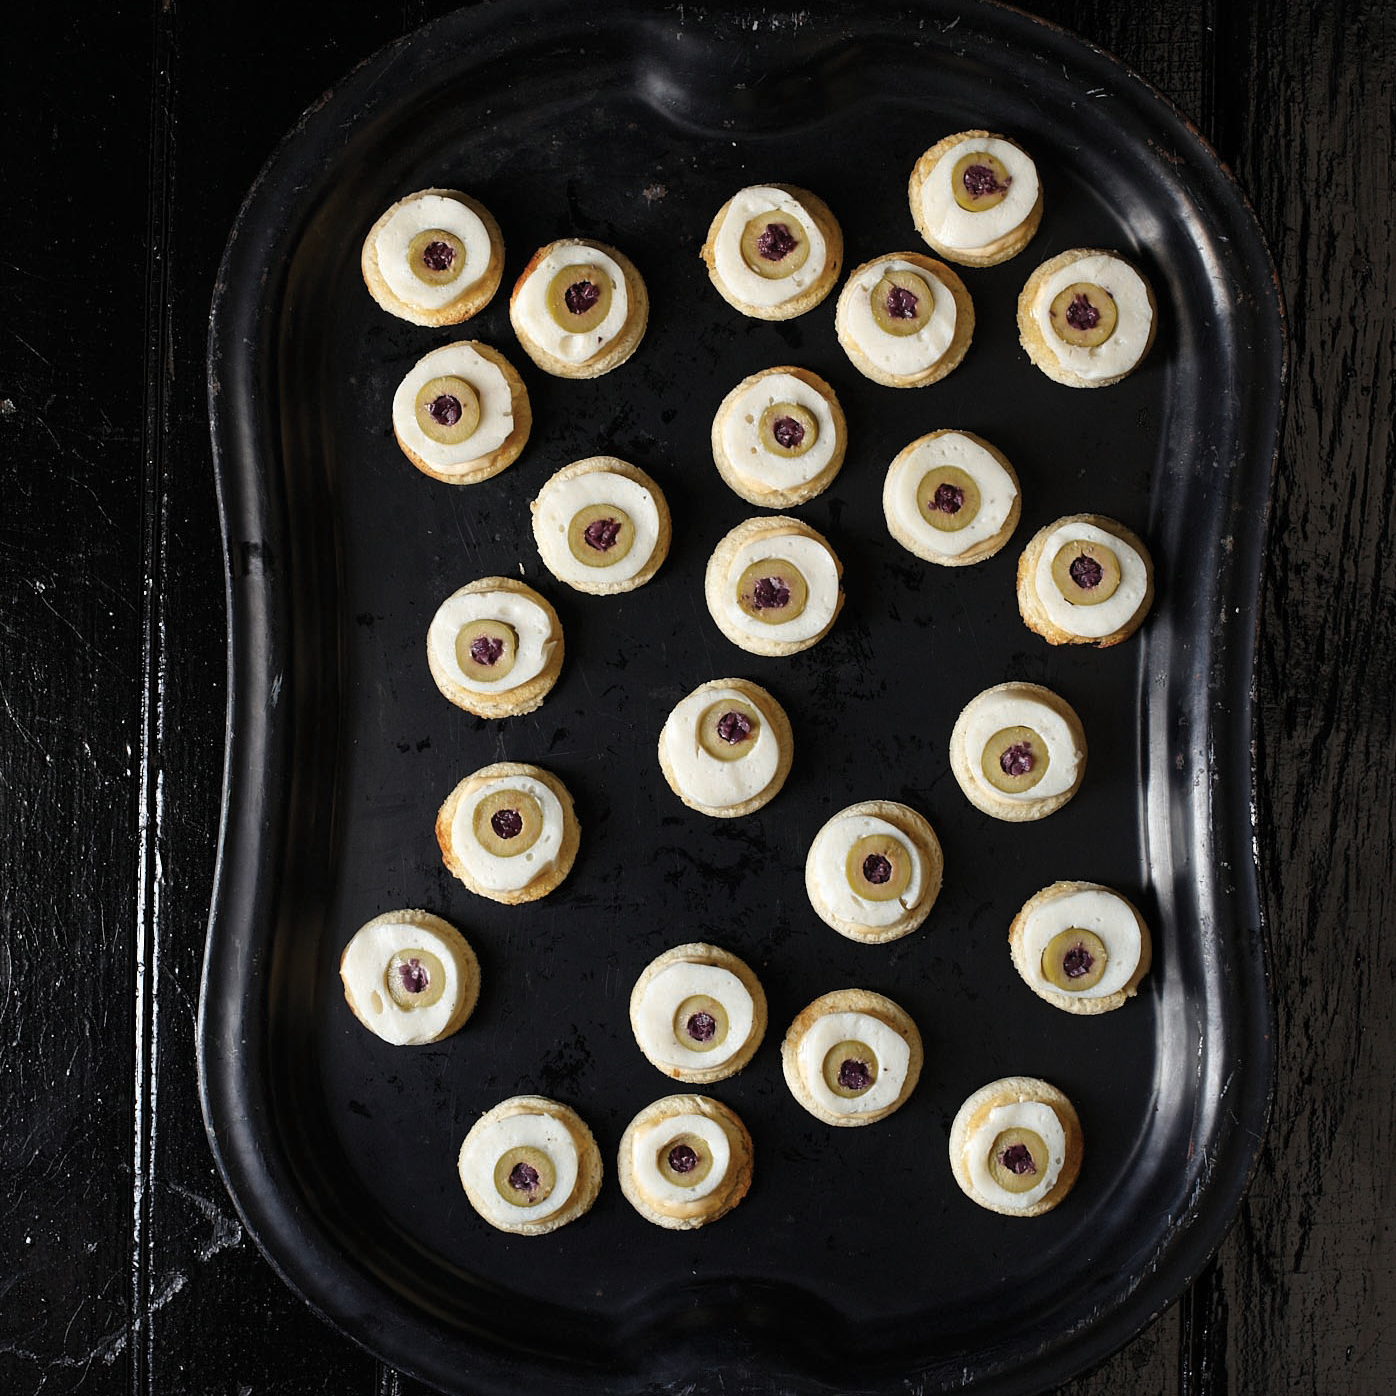 201110-r-scallop-and-olive-eyeball-canapes.jpg